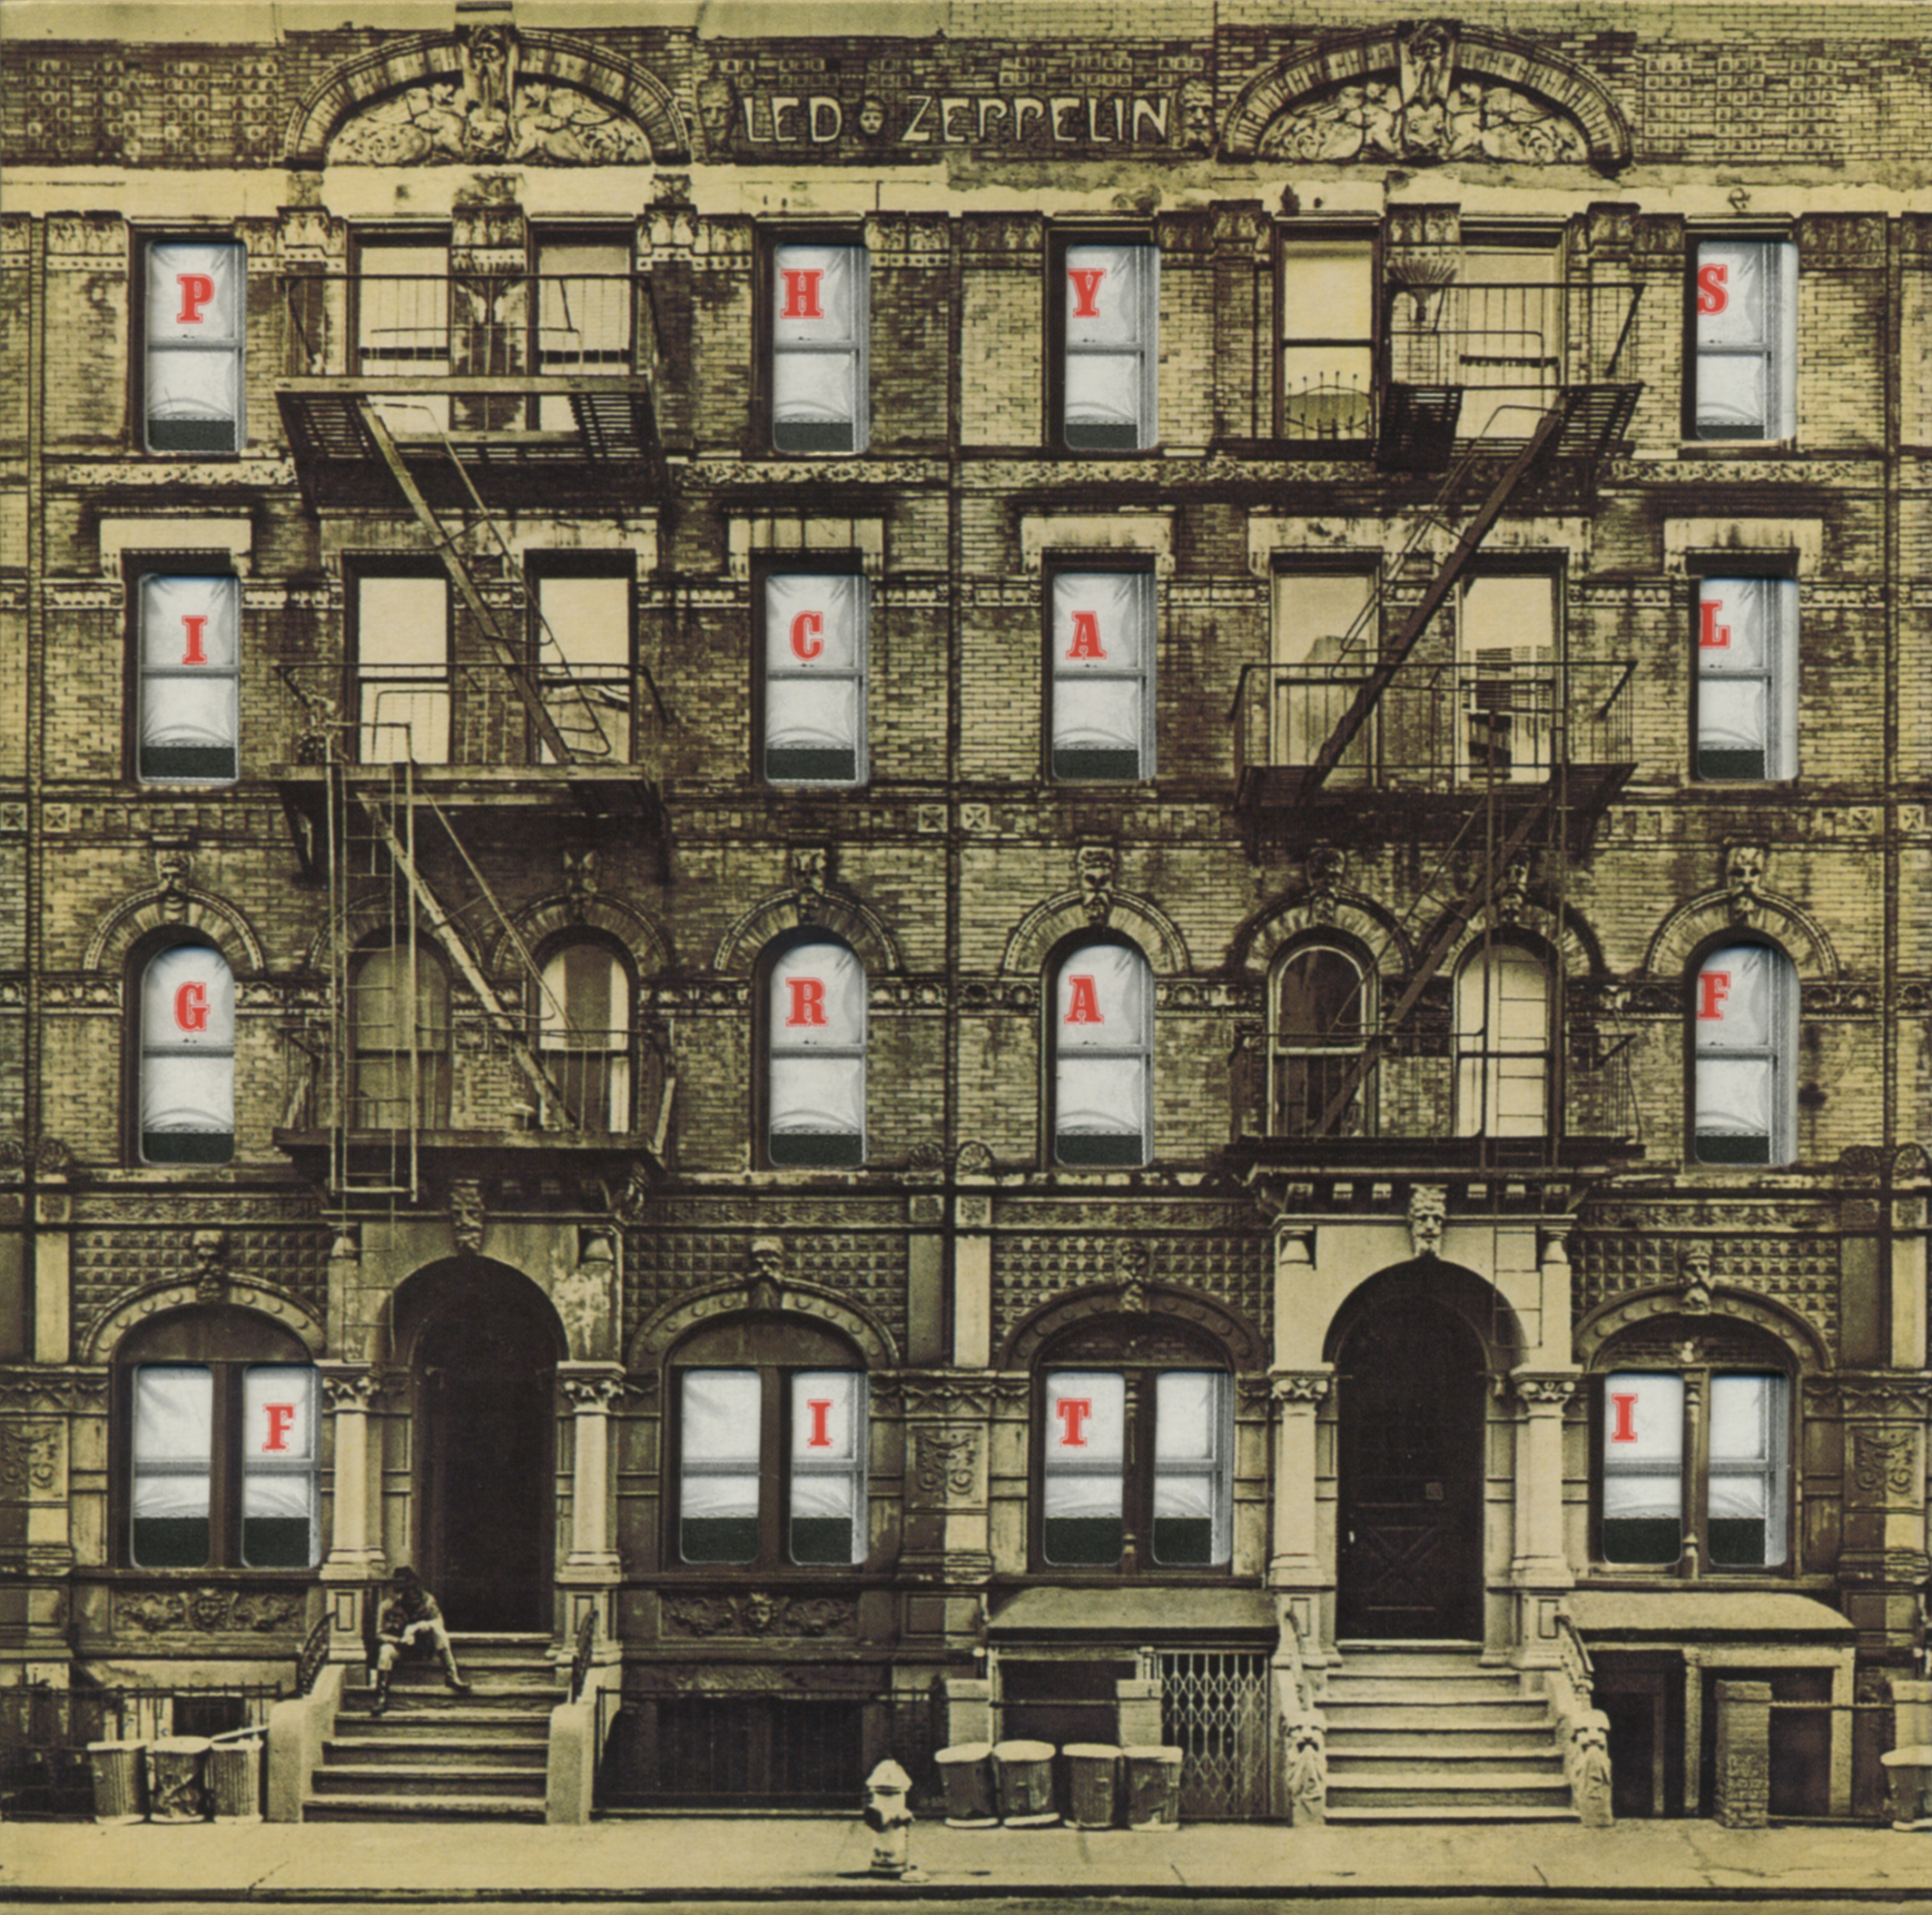 houses classic led Zeppelin HD Wallpaper